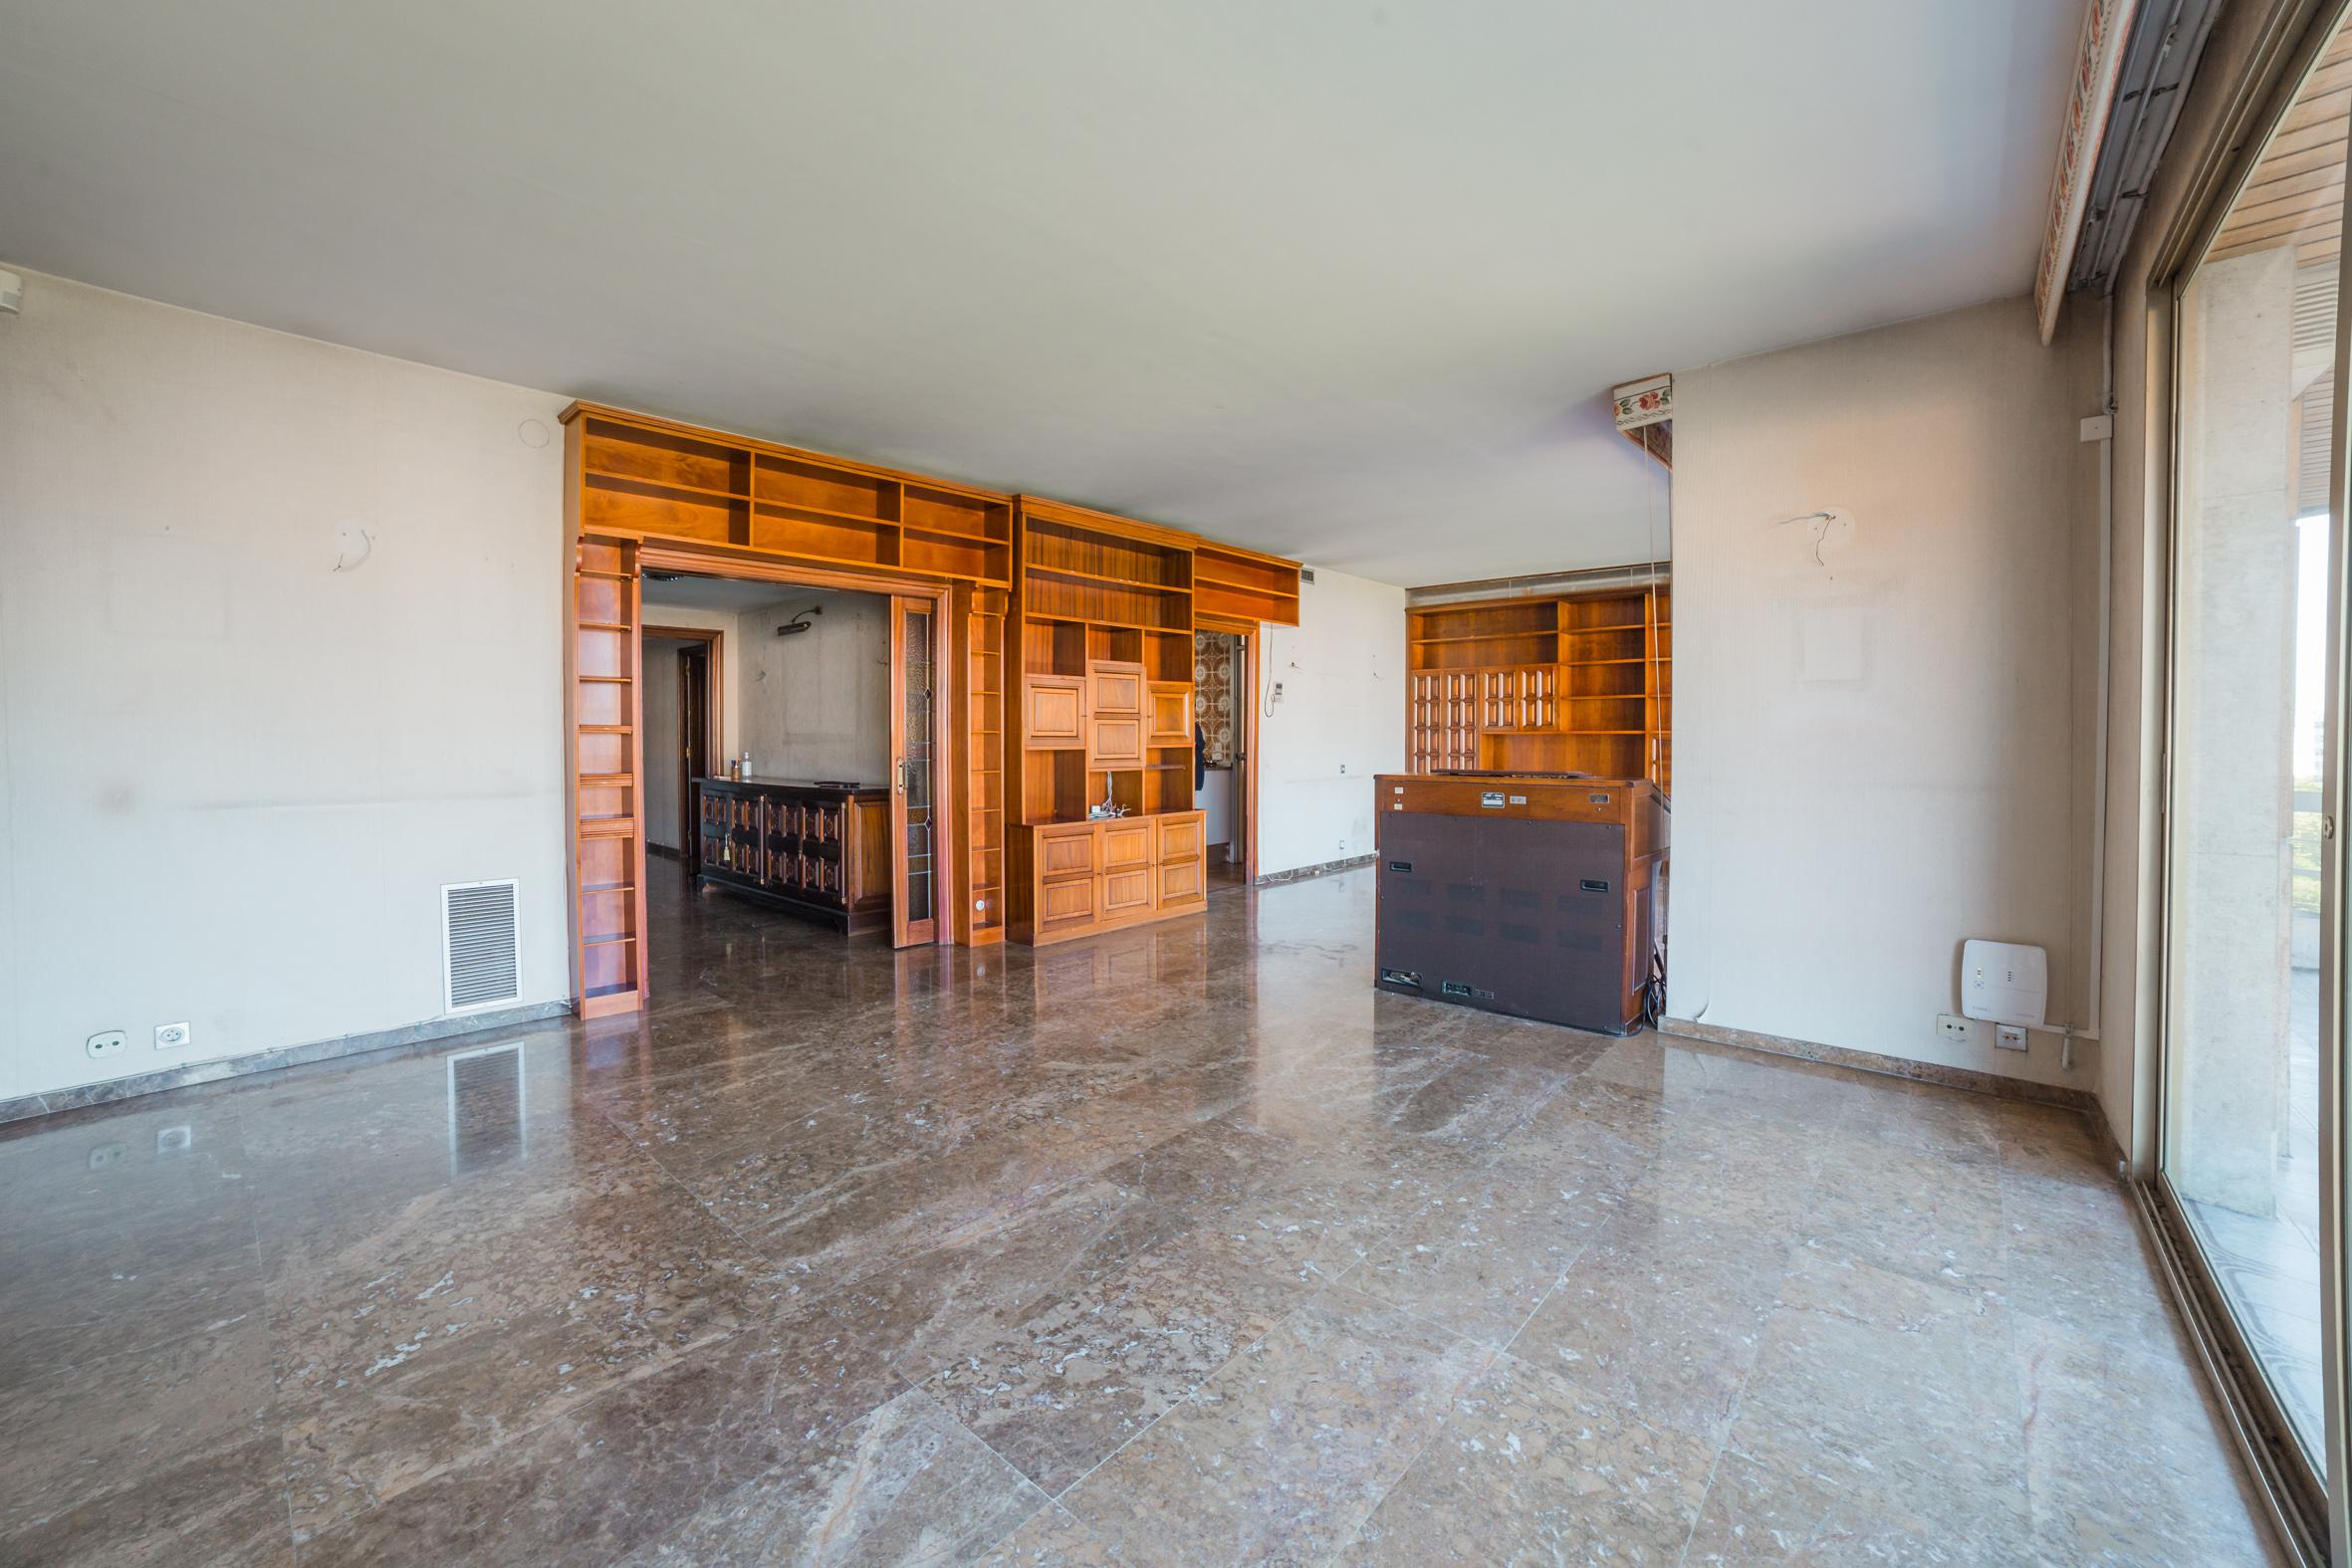 248988 Flat for sale in Les Corts, Les Corts 5